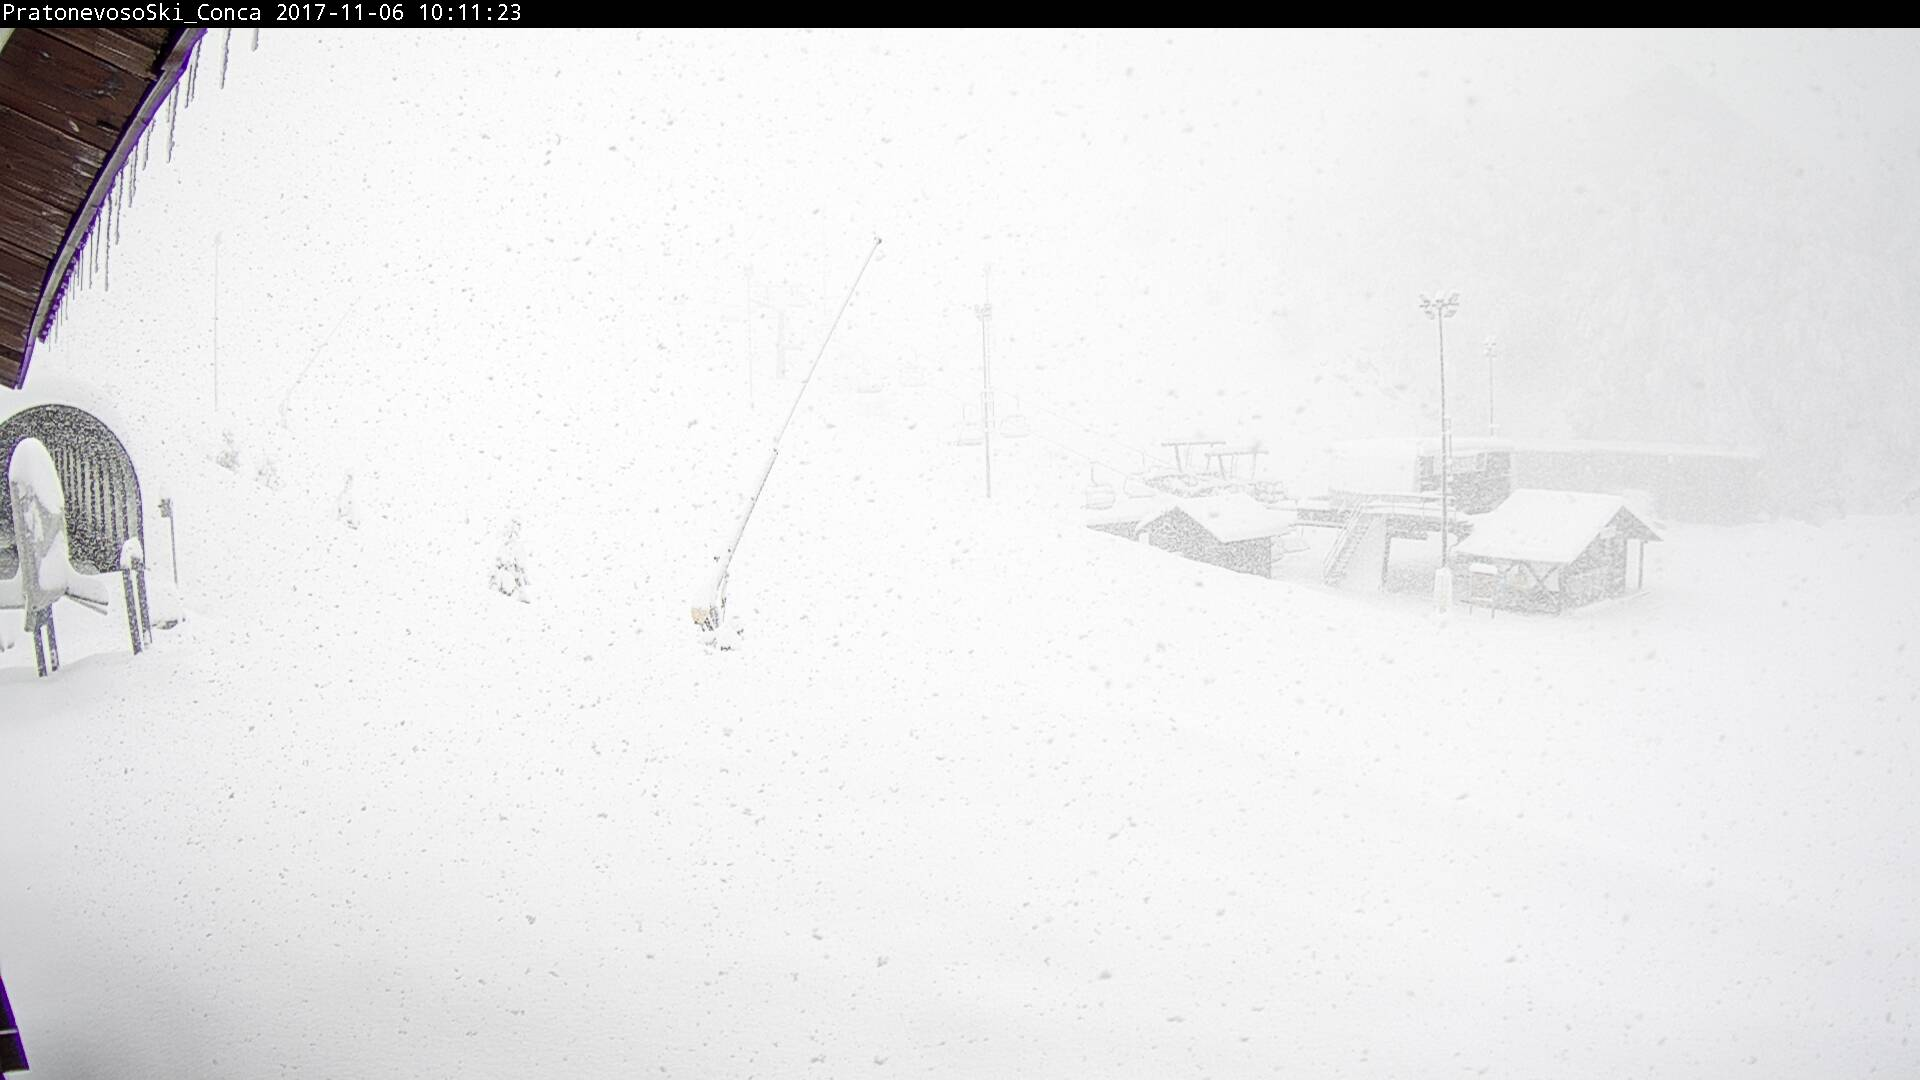 Neve in montagna - Webcam Prato Nevoso